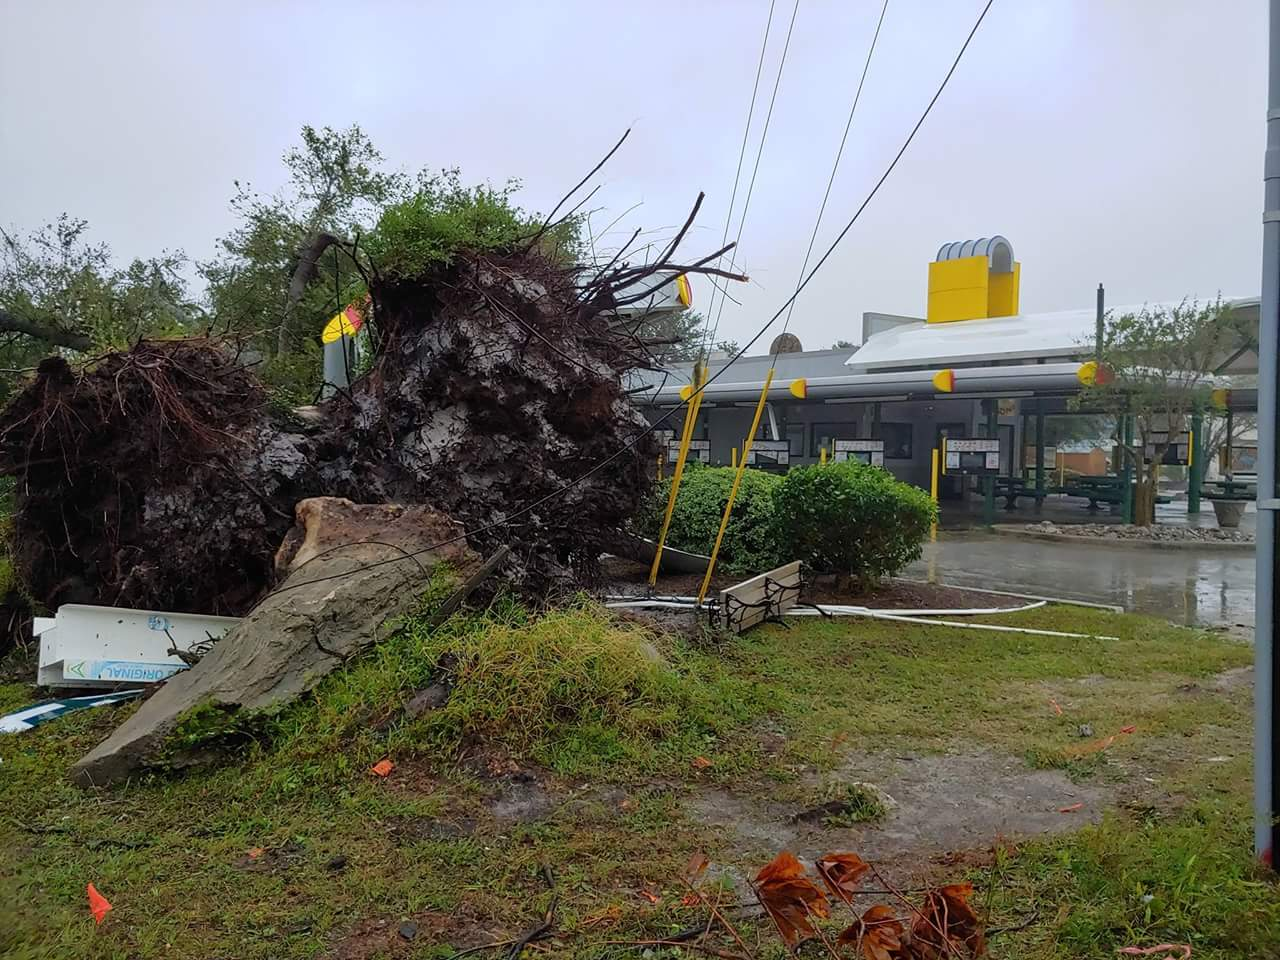 The Sonic Drive-In on Market Street suffered damage from fallen trees in the form of a collapsed canopy from Hurricane Florence.